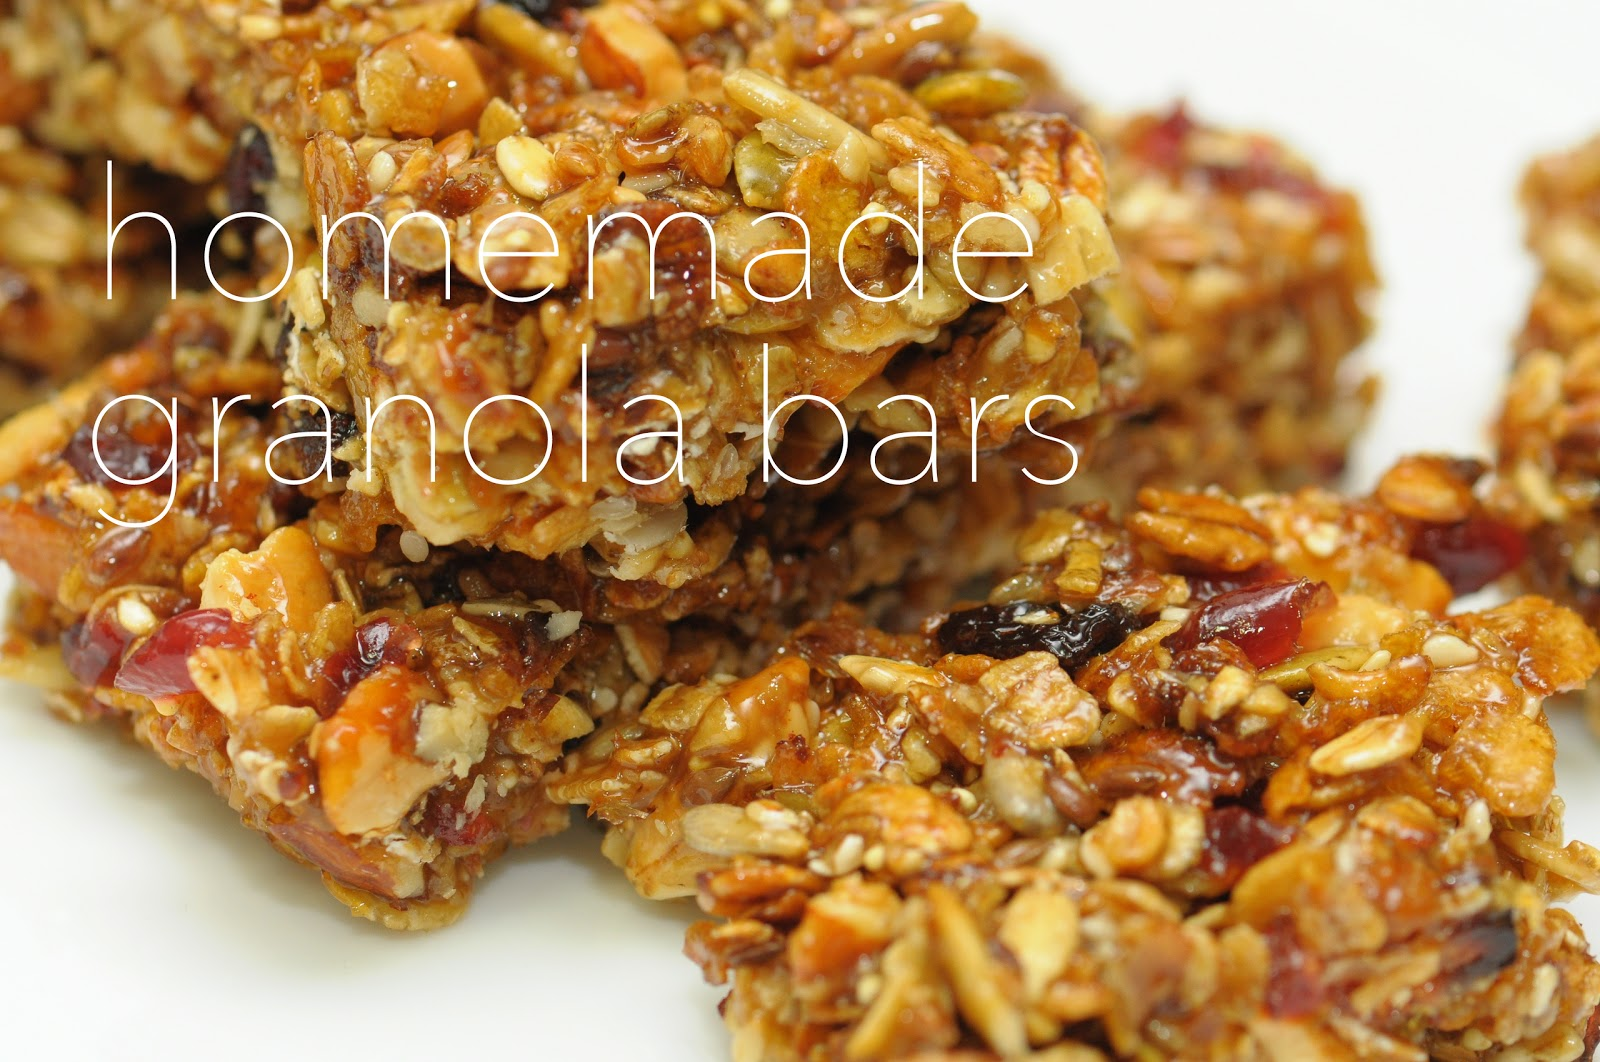 granola bars homemade granola bars 52 new foods week 34 august 31 2012 ...